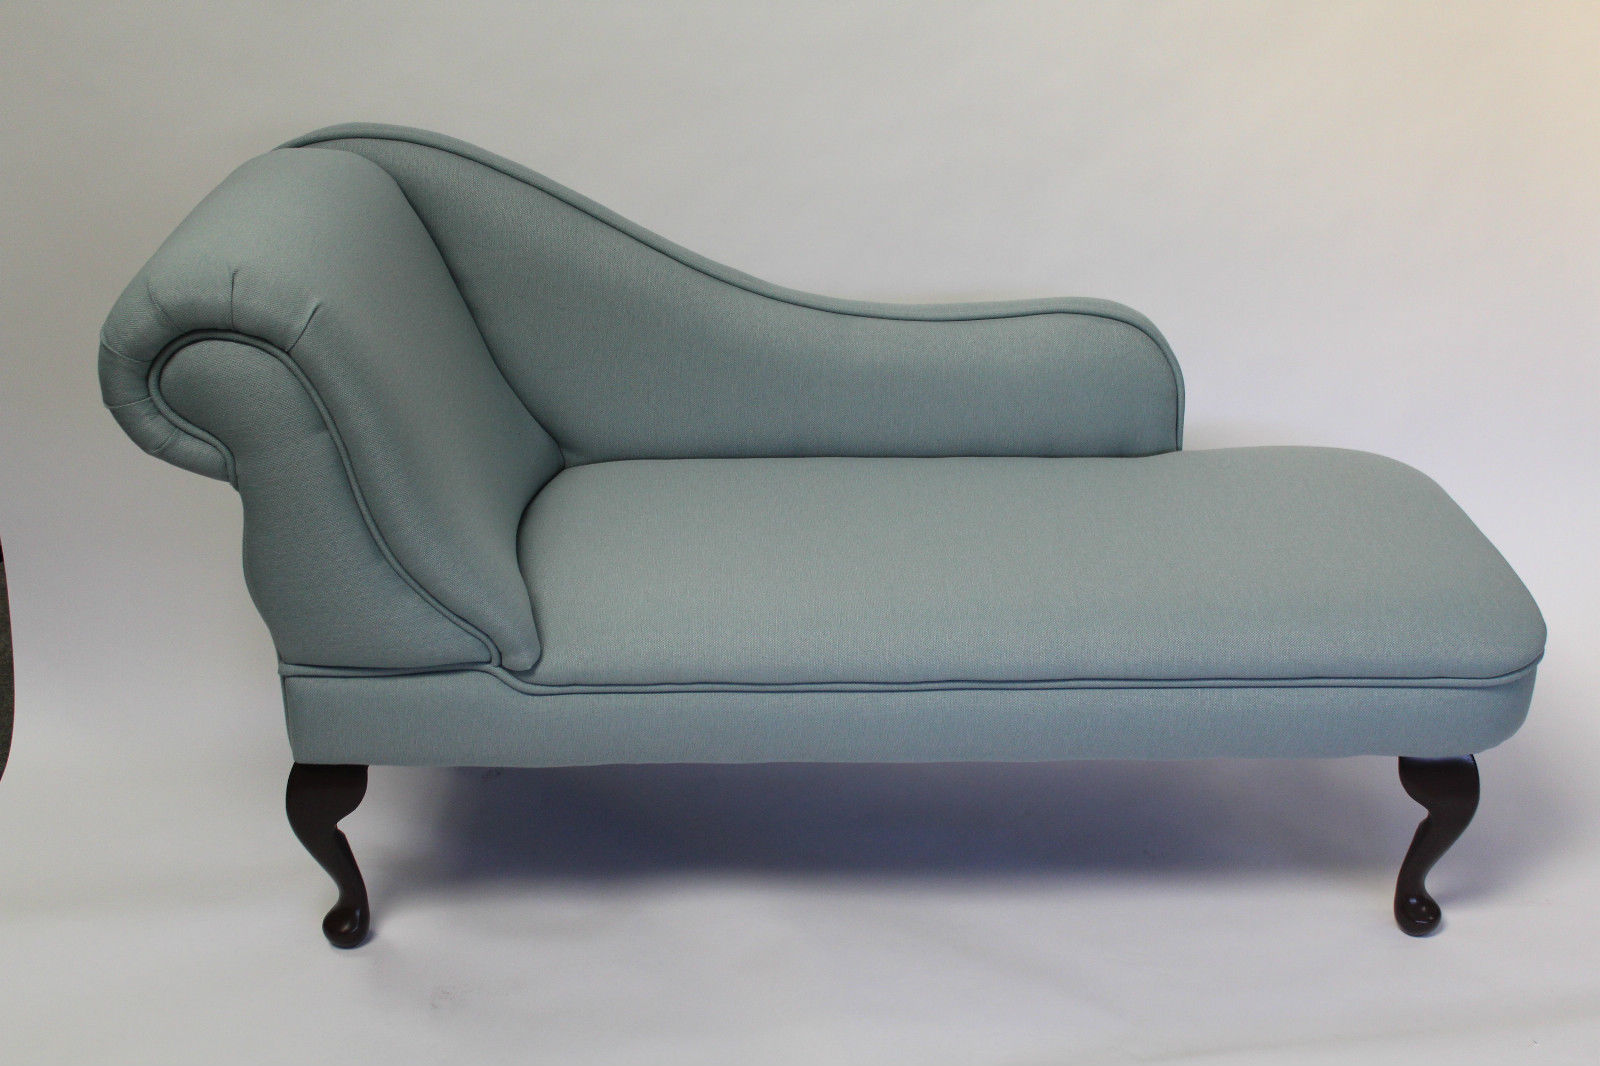 Designer Traditional Chaise Longue in Light Duck Egg Blue Linen Fabric NEW : light blue chaise - Sectionals, Sofas & Couches